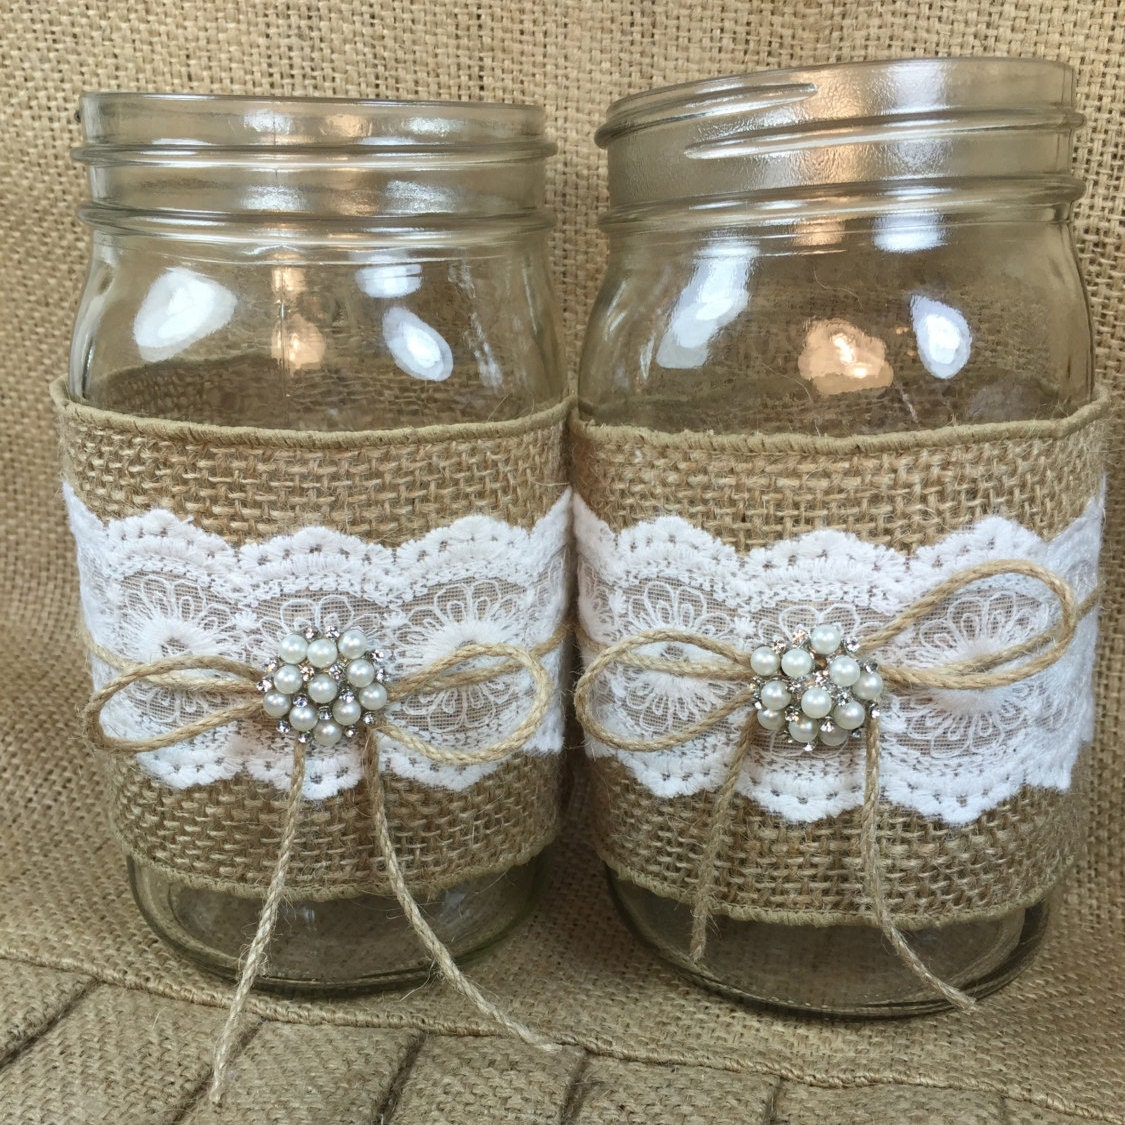 Rustic Jars For Wedding: Set Of 3 Burlap Mason Jar Rustic Wedding By ElianasTreasures